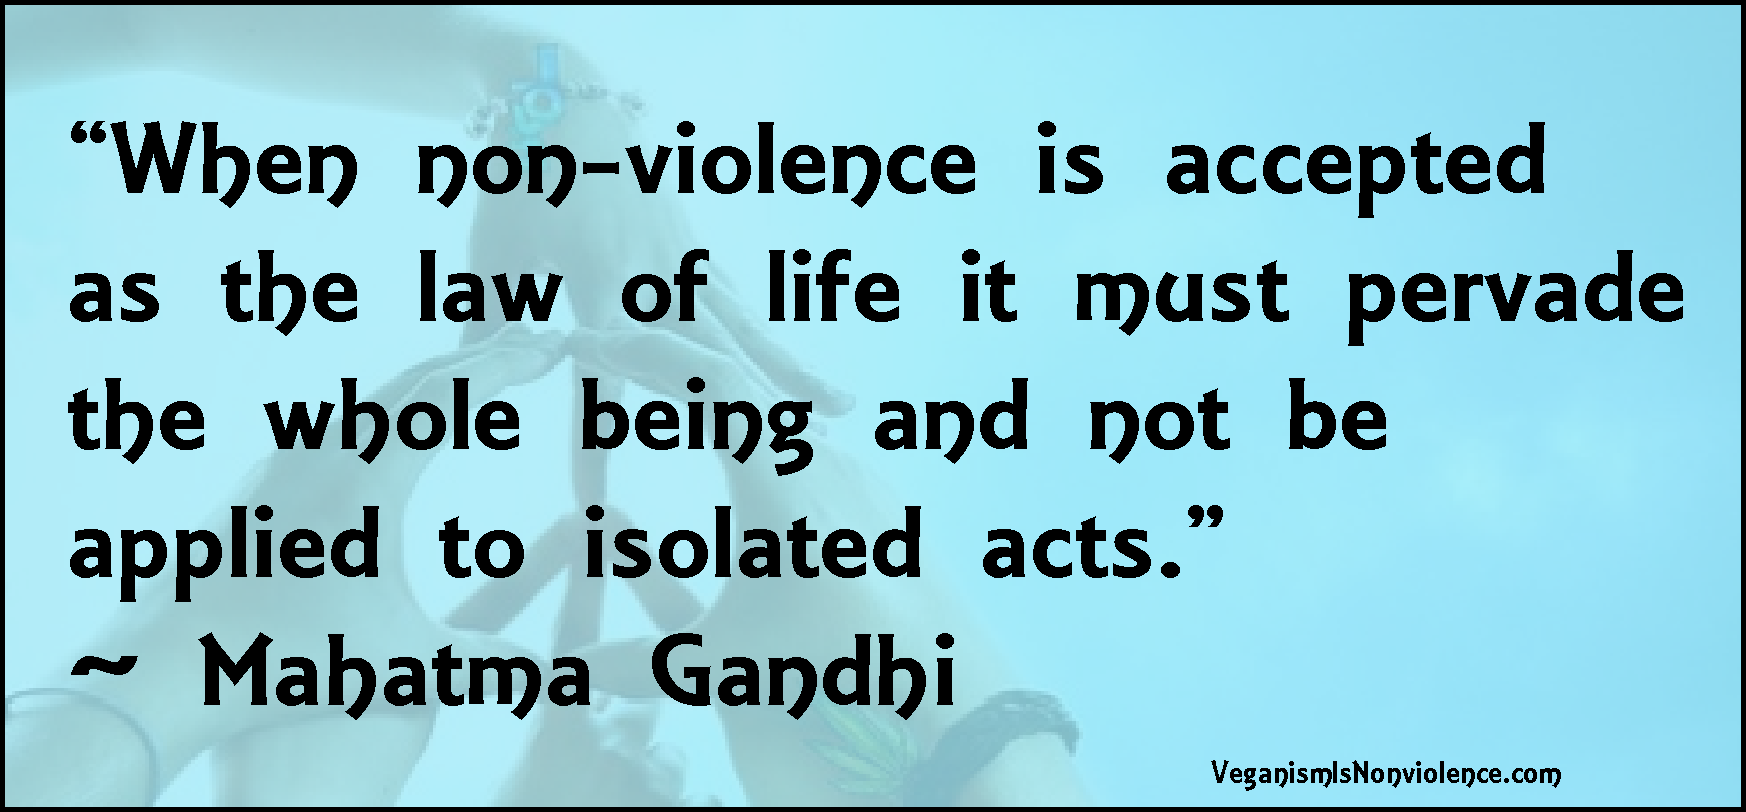 disclaimer veganism is nonviolence nonviolence in speech middot nonviolent speech